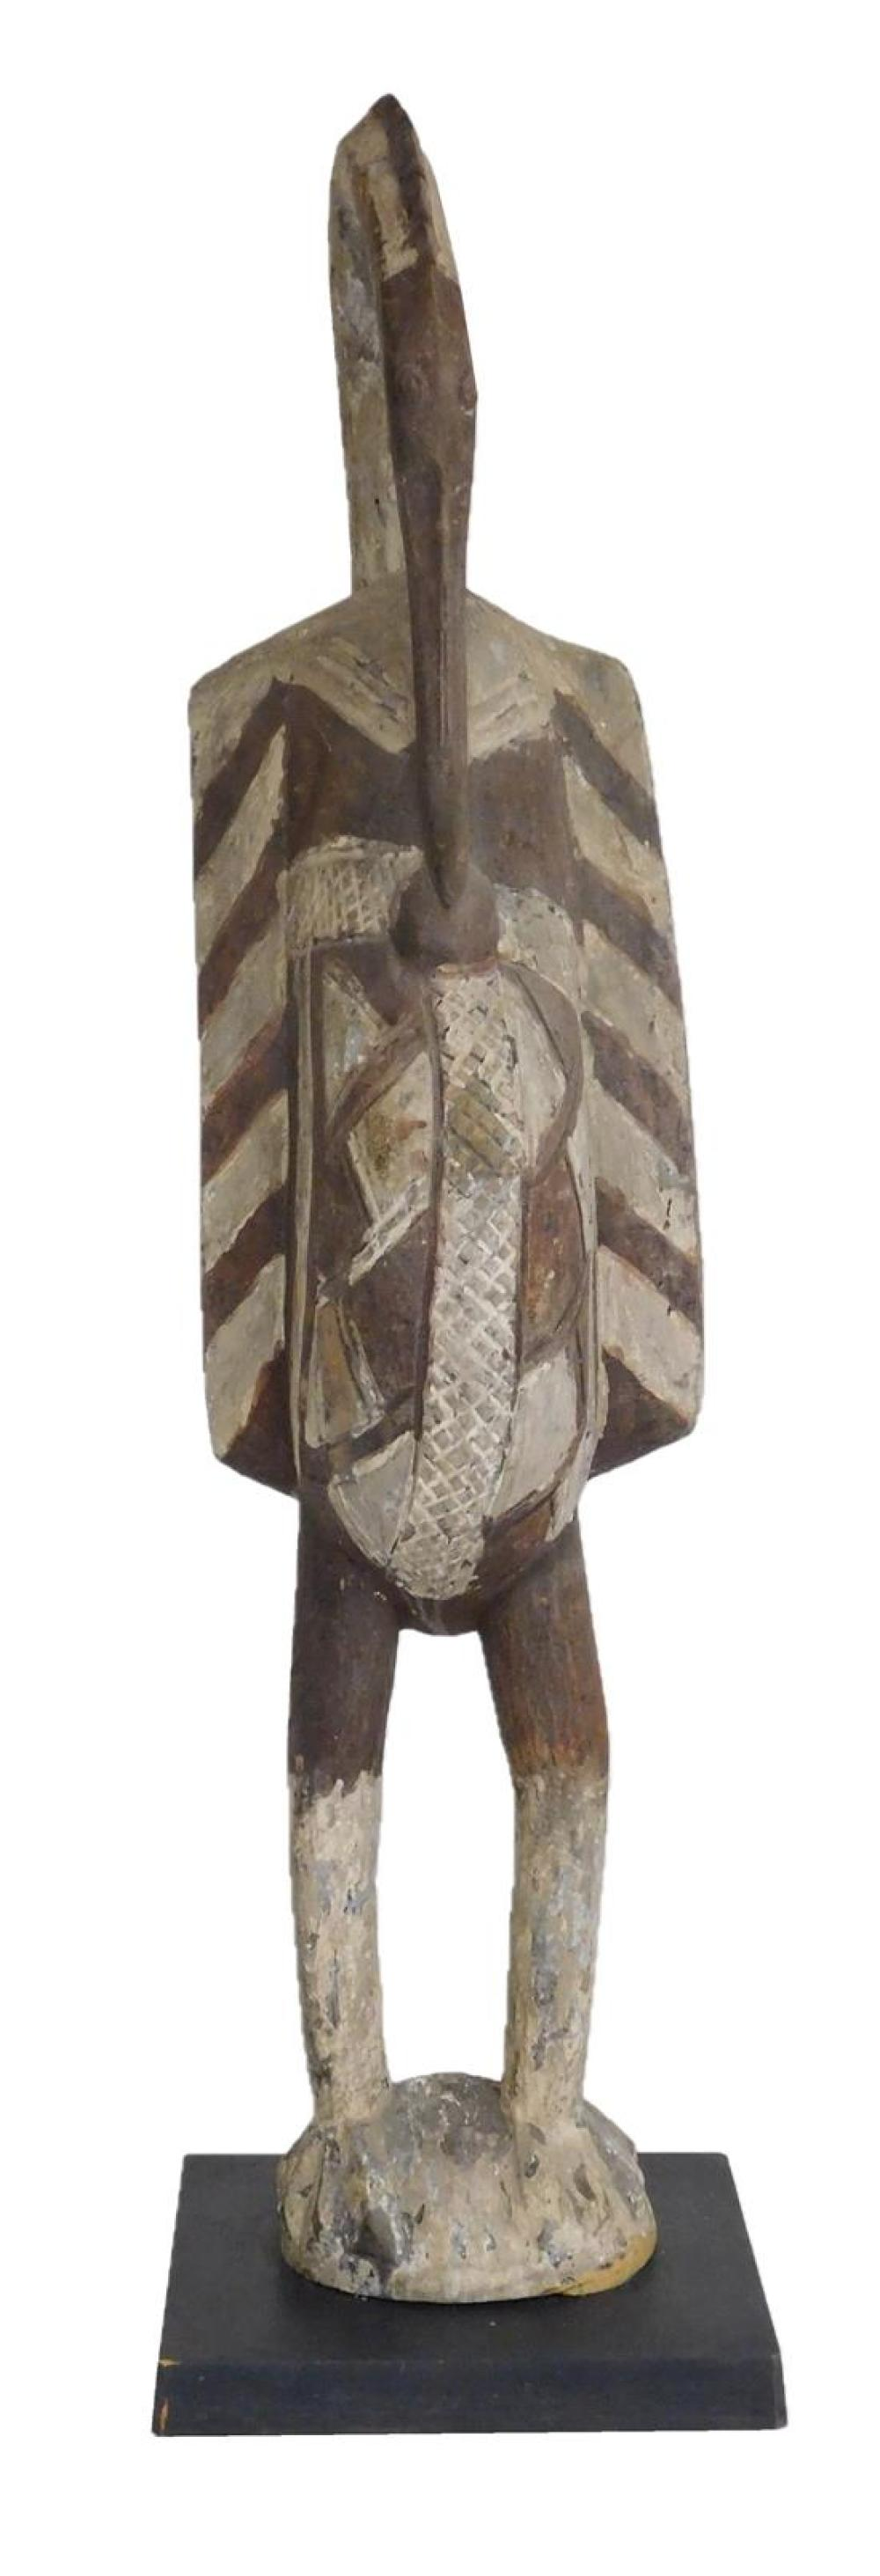 TRIBAL: Senufo Porpianong Bird, Ivory Coast, 20th C., made for the tourist trade, wood with pigment, large carved wood figure of a p...